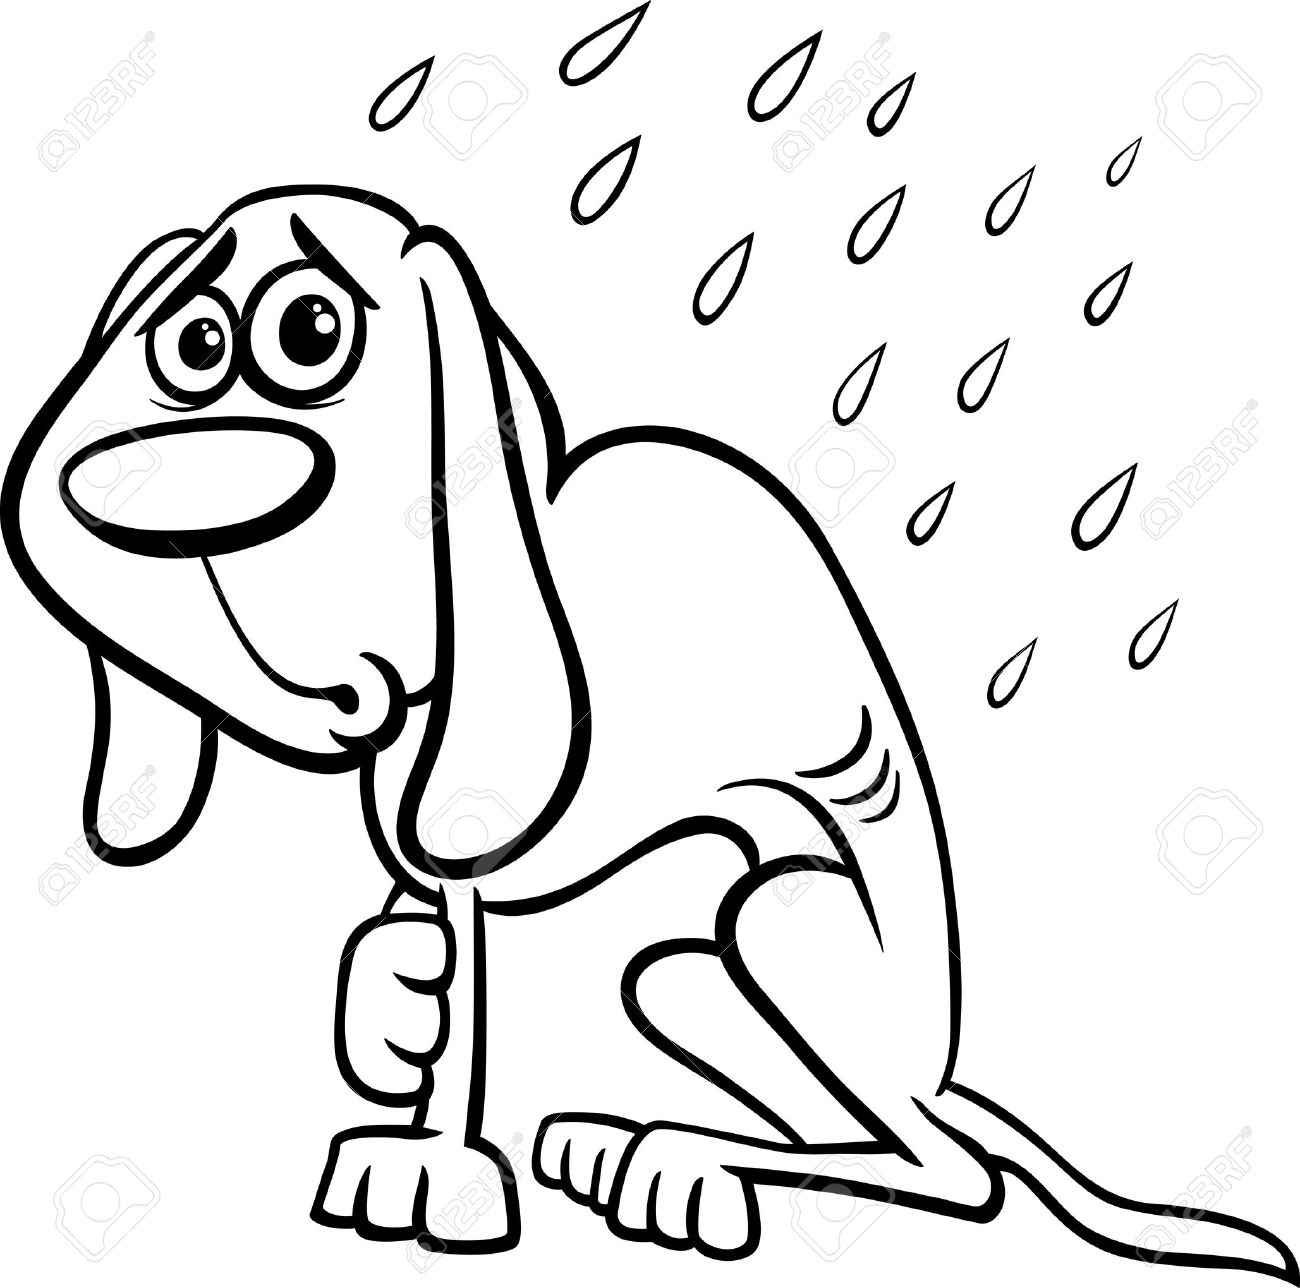 Black And White Cartoon Illustration Of Poor Homeless Dog In The Rain For Coloring Book Stock